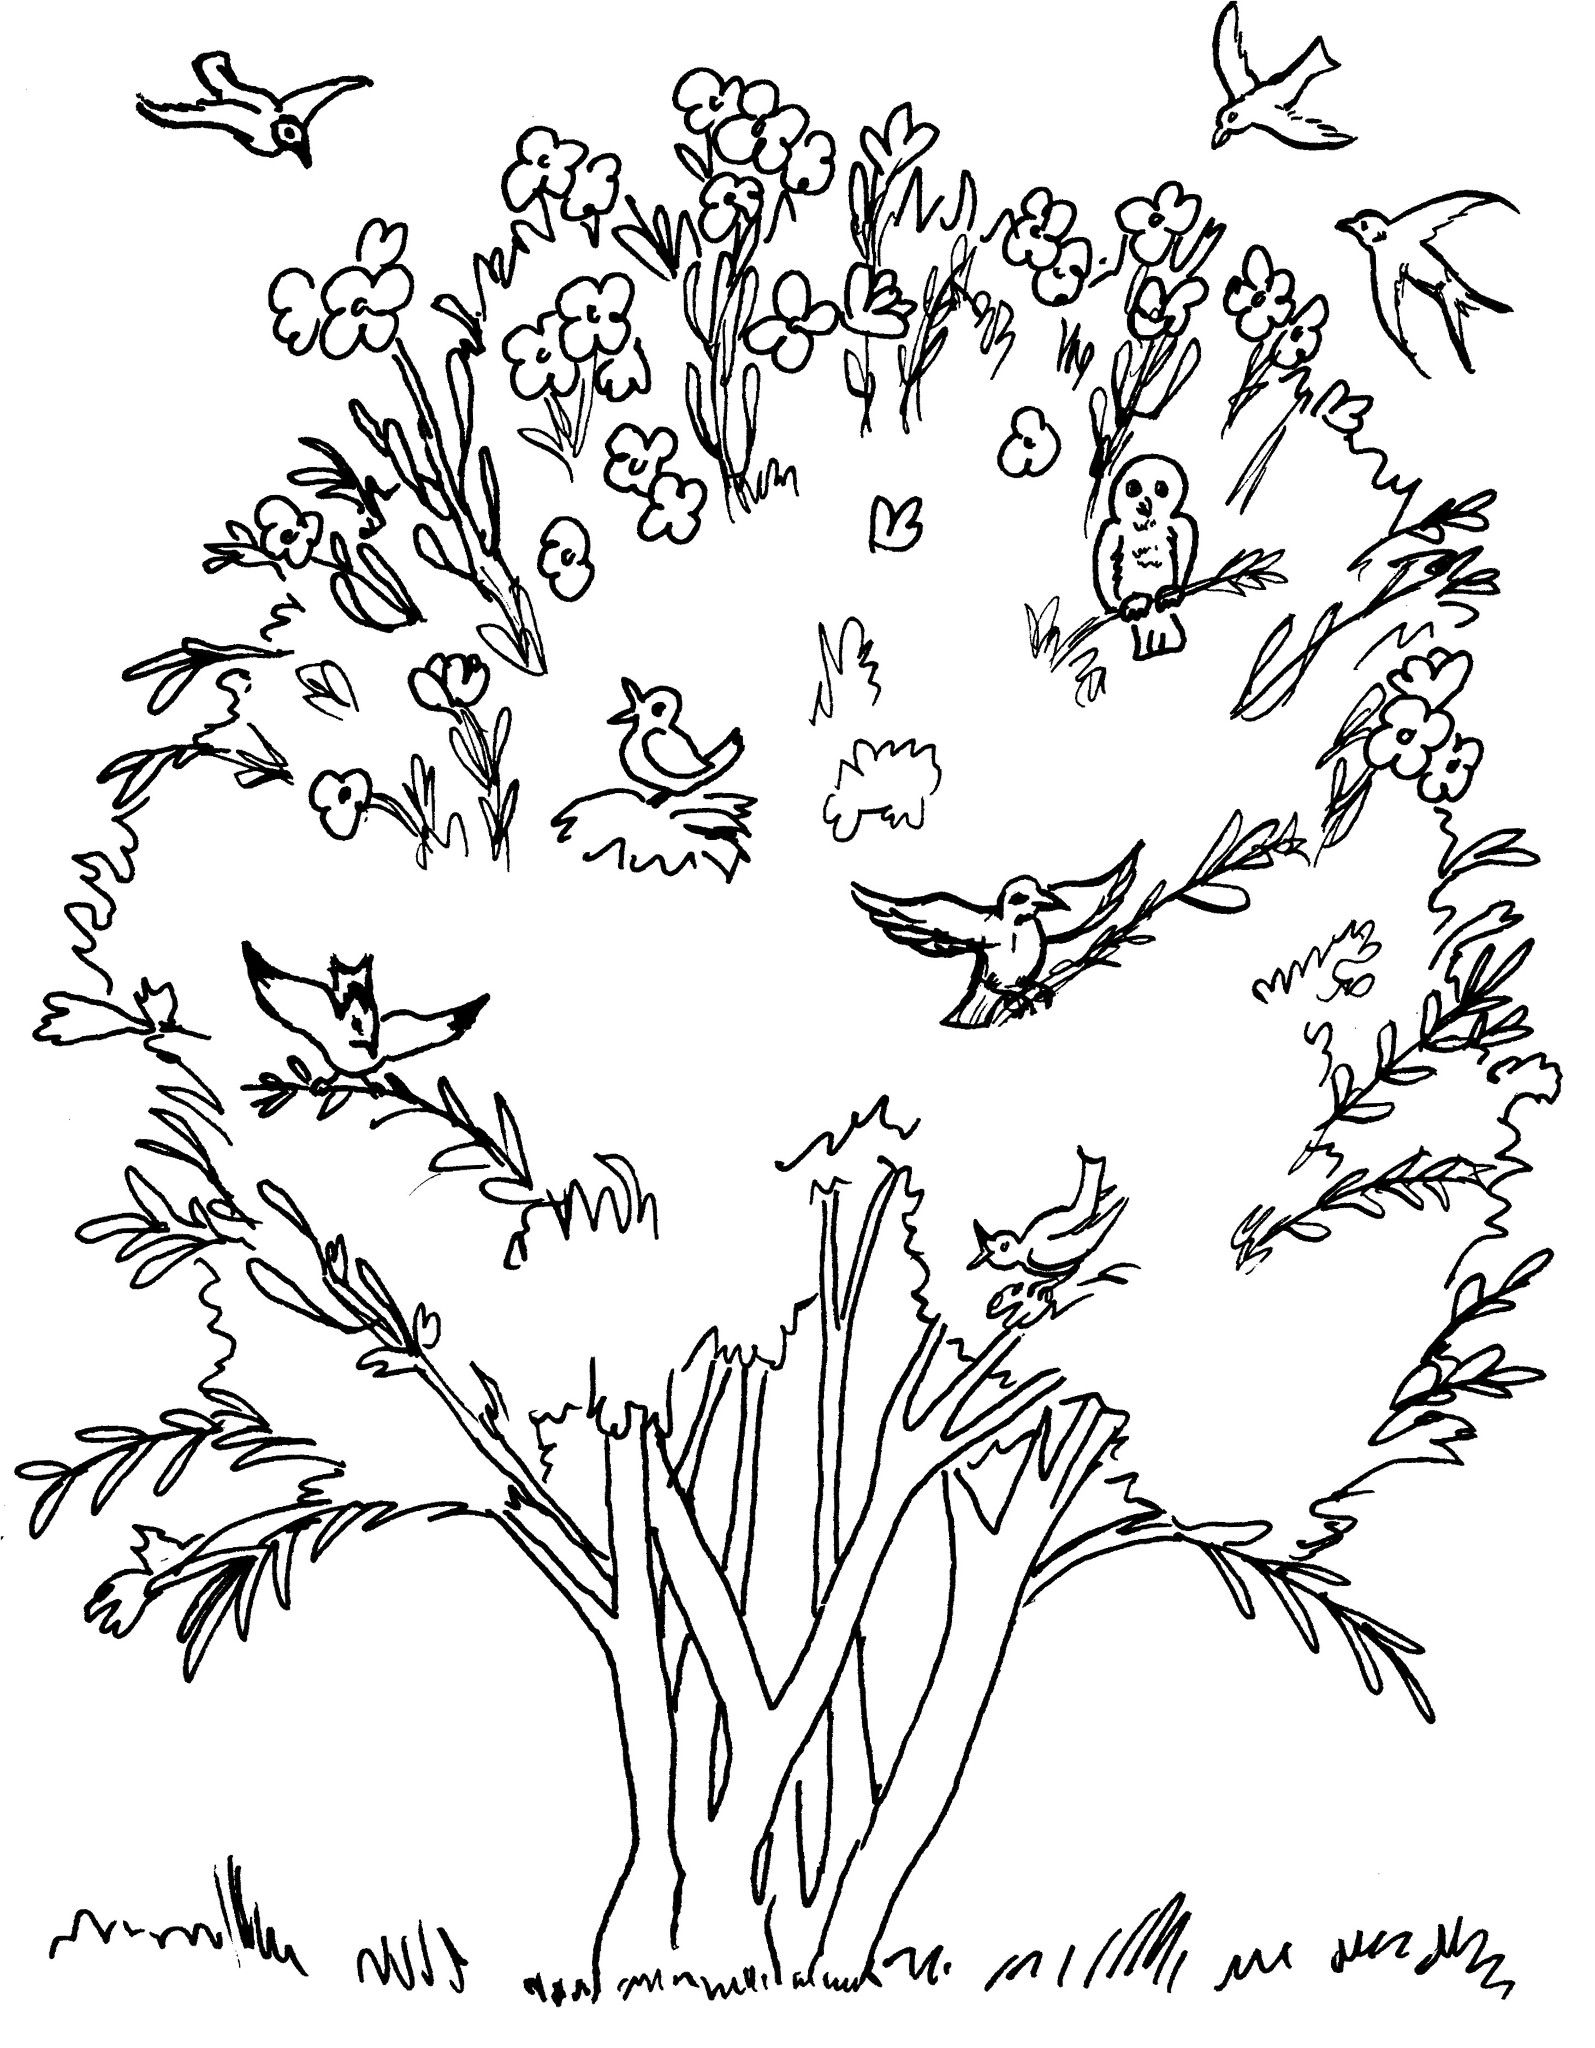 Parable Of The Mustard Seed Coloring Pages